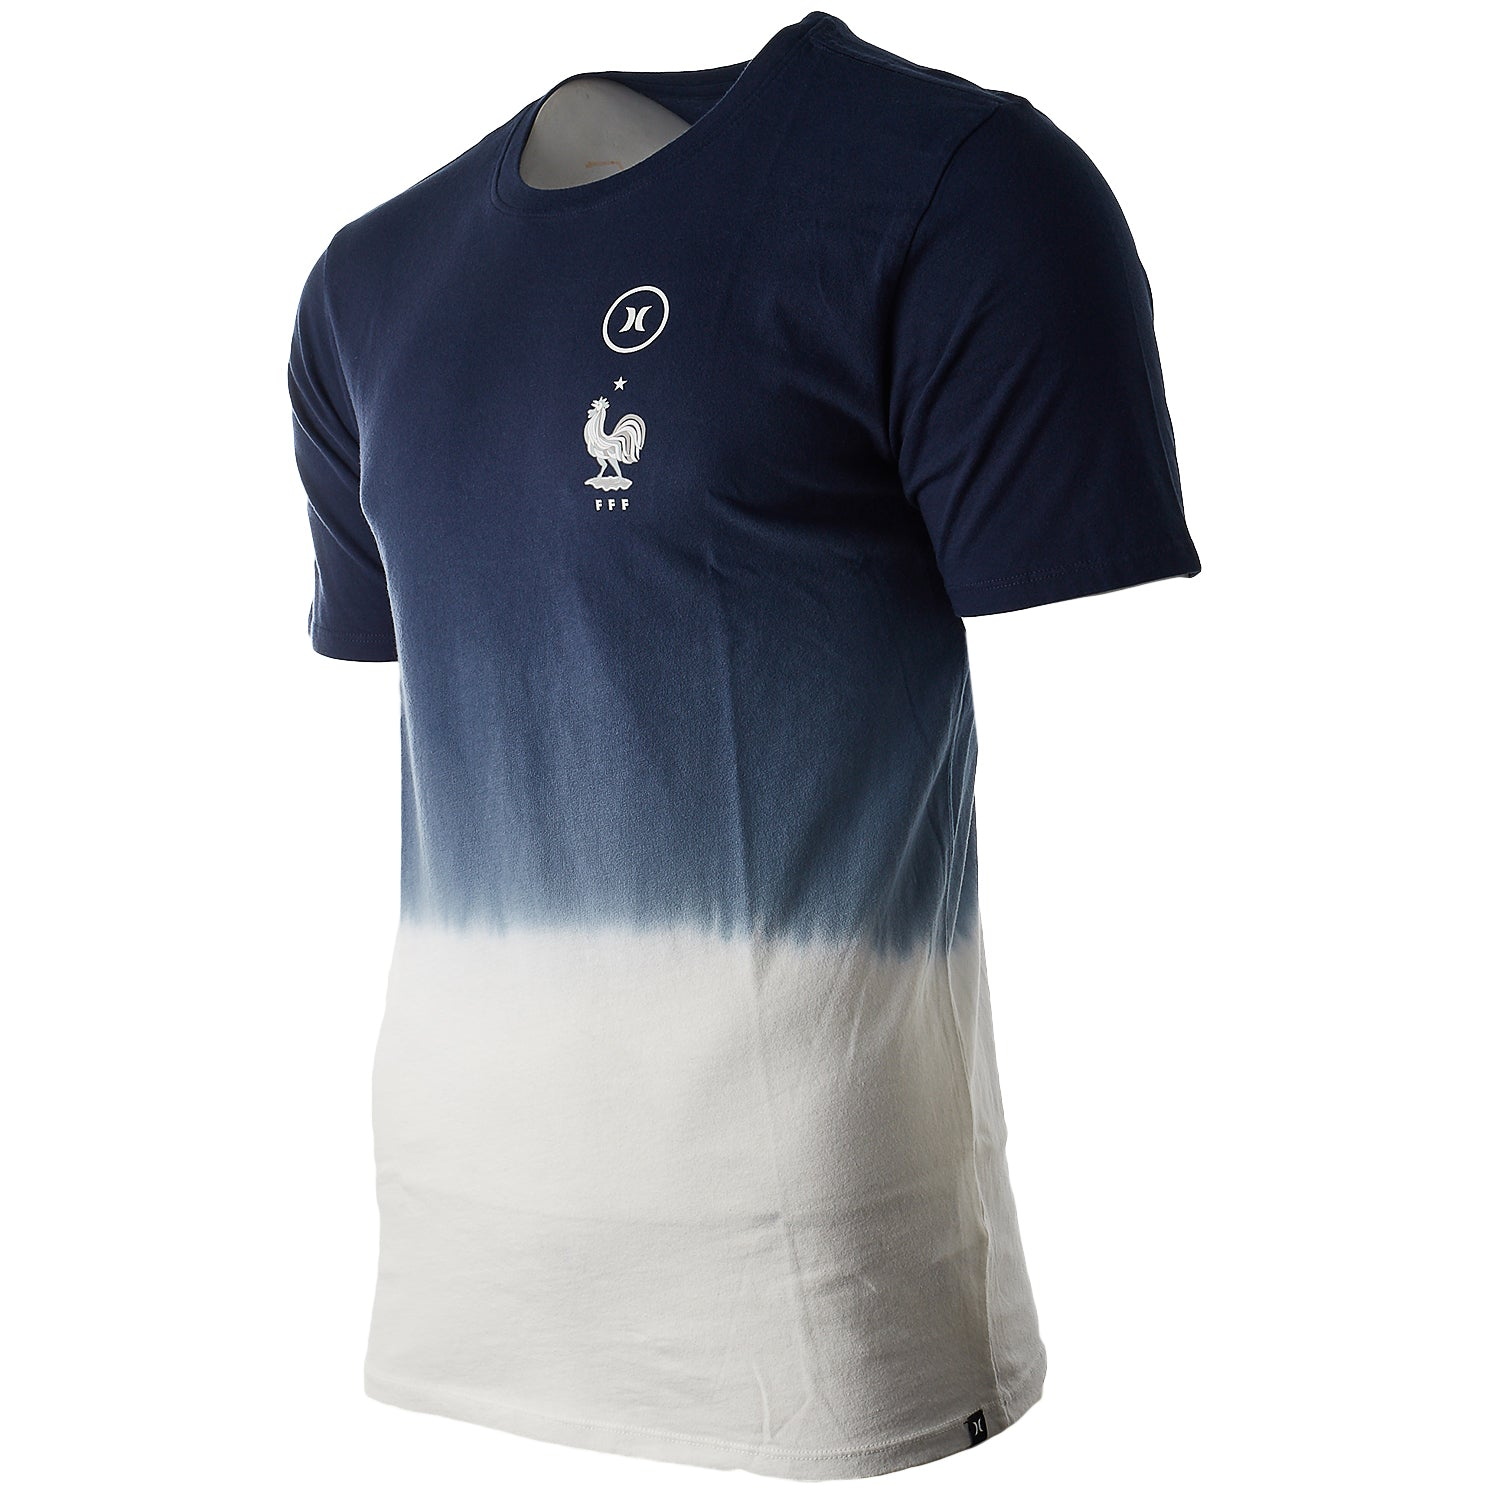 6dee2bbe2b71 Hurley French National Team T-Shirt - Men's - Shoplifestyle